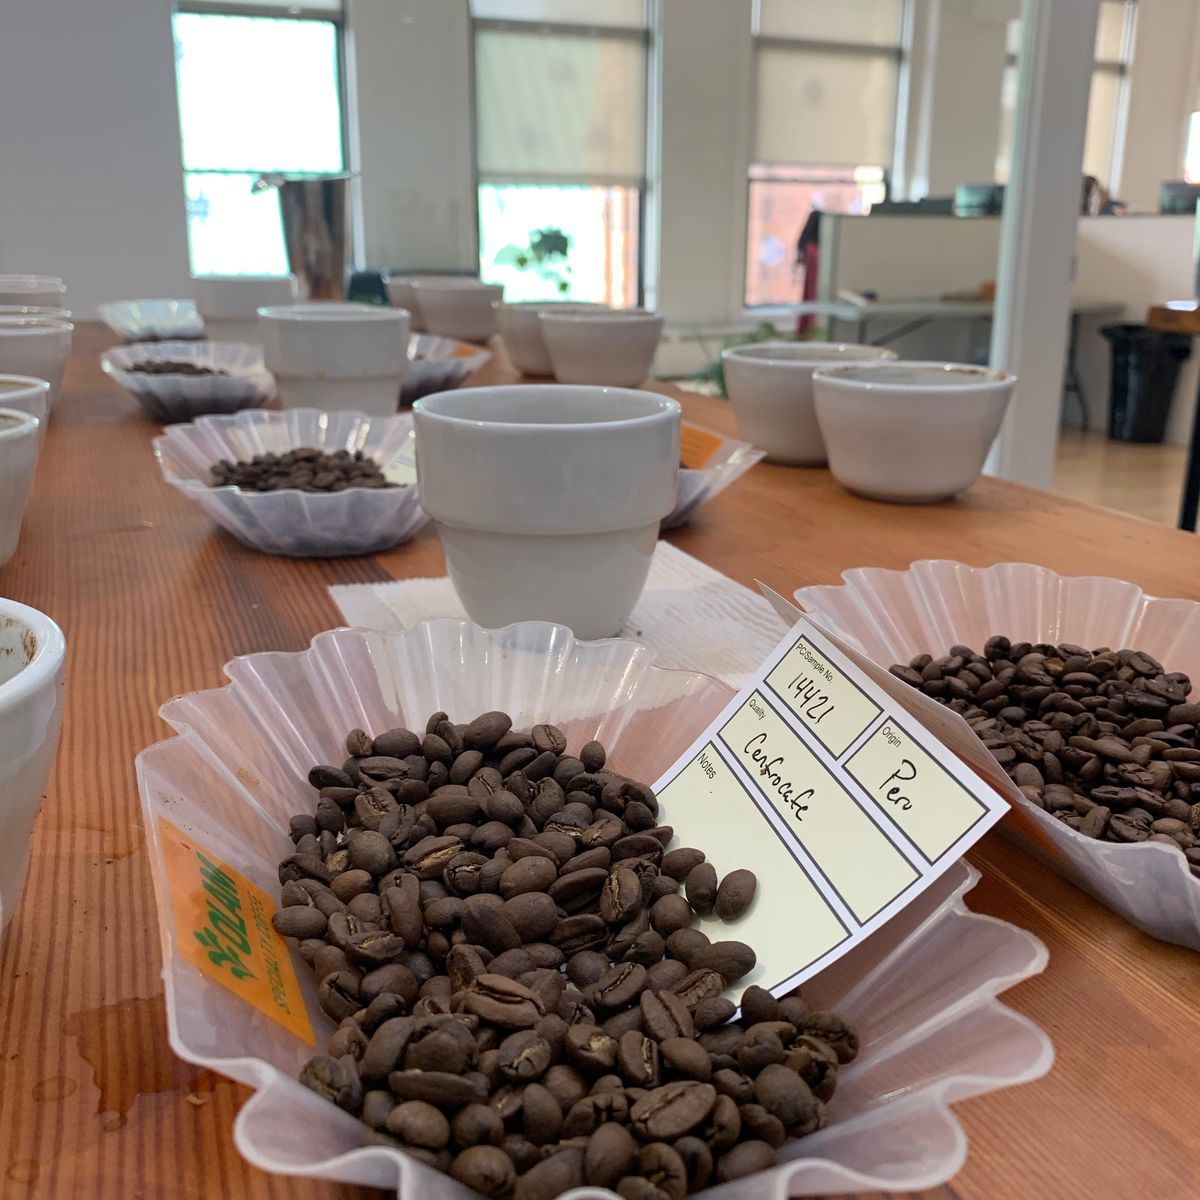 A cupping setup to test roasted coffee beans, night shift roasting